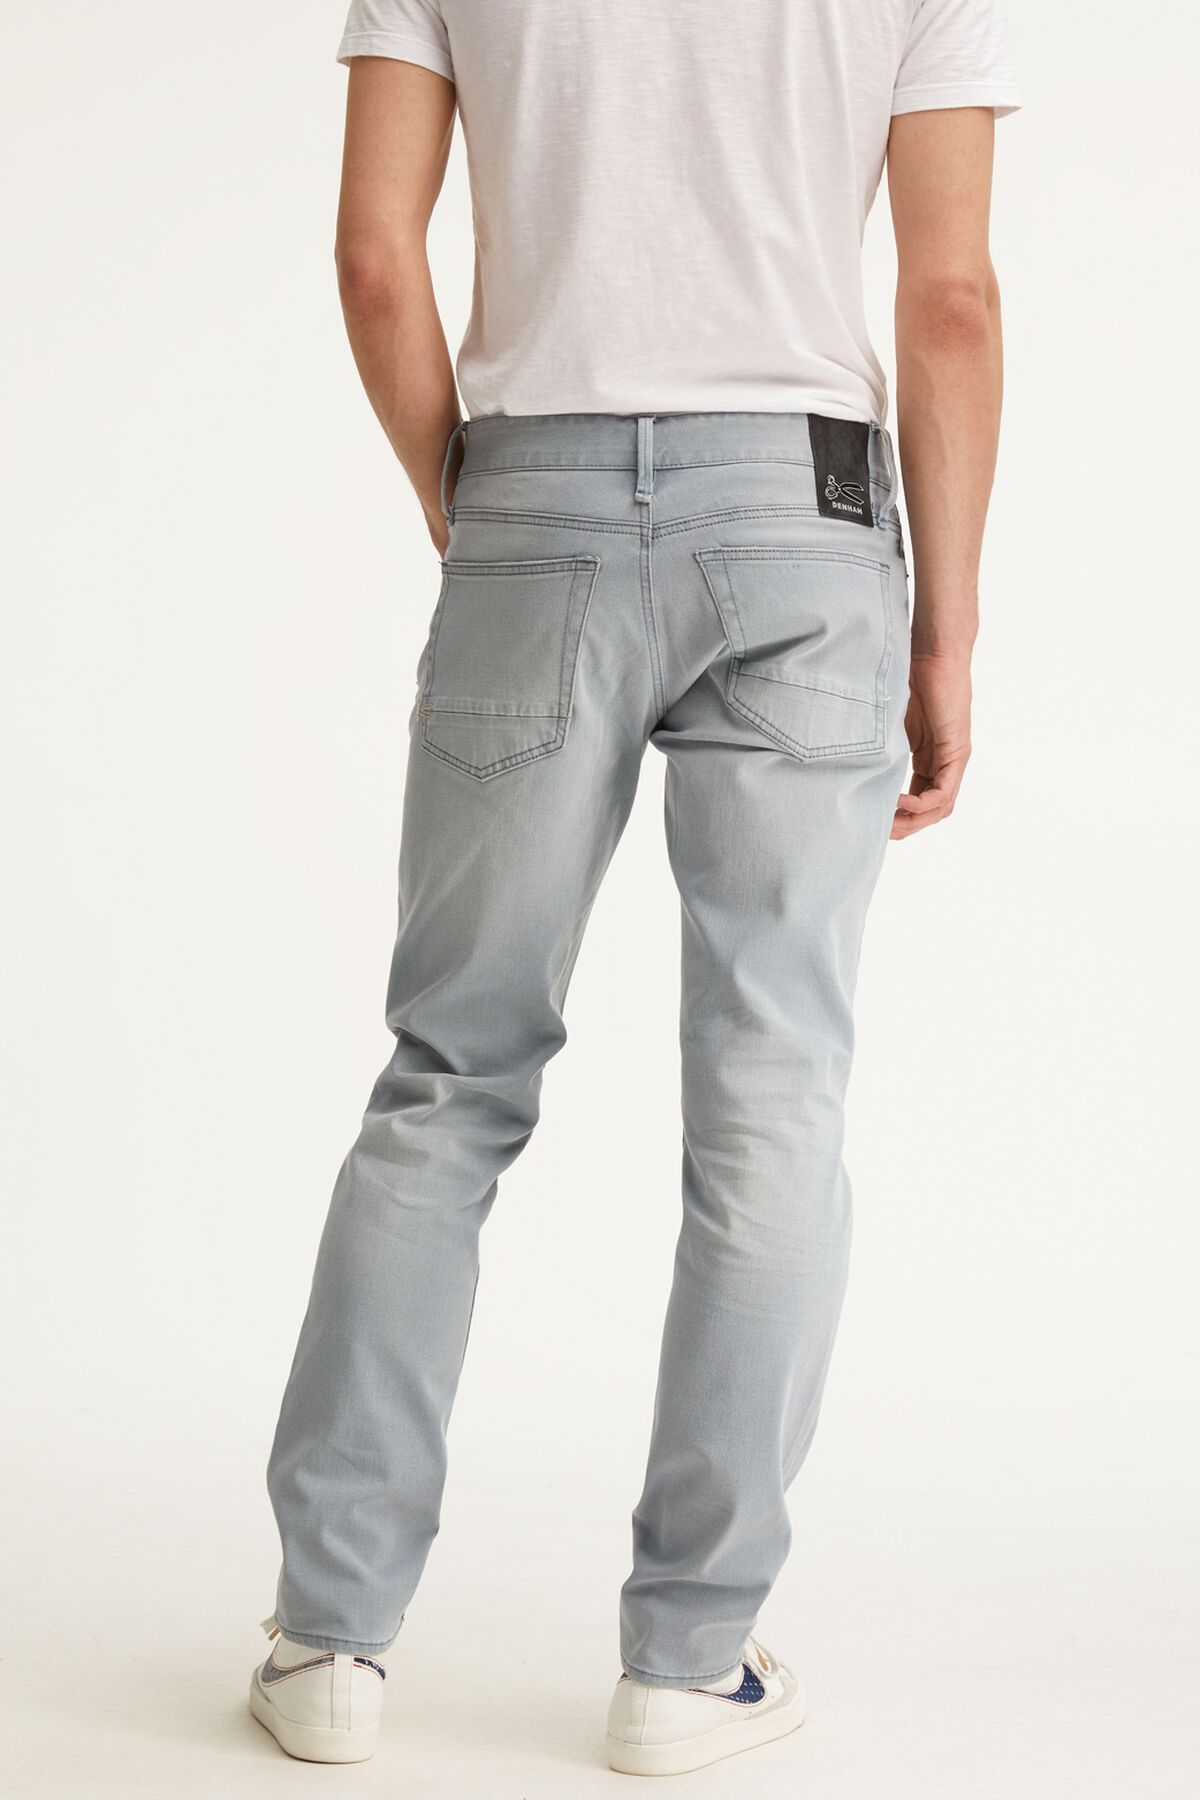 RAZOR Special Indigo Cast Denim - Slim FIt